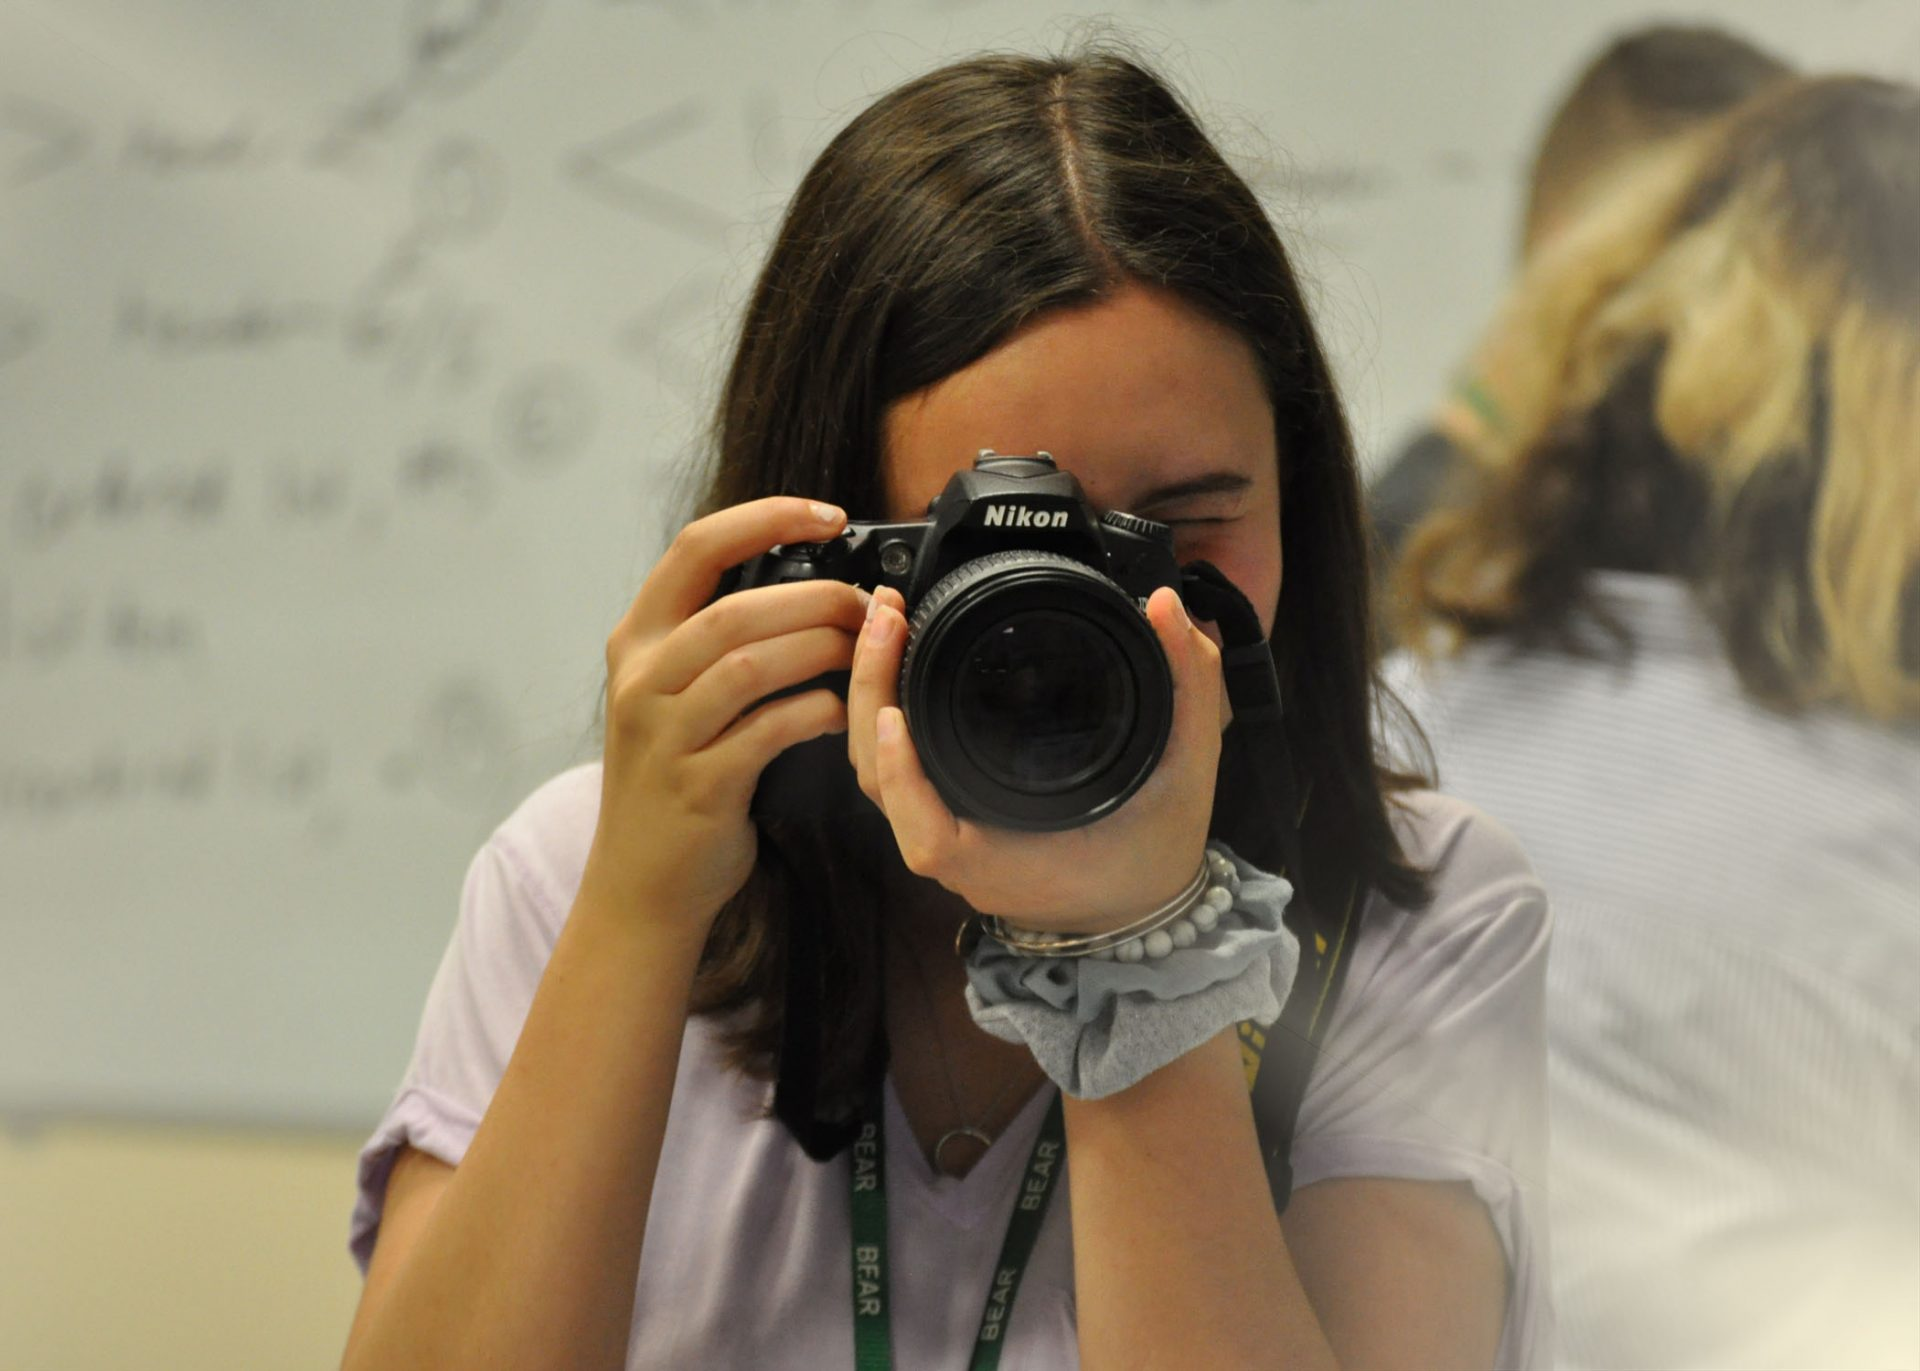 Media Technology student with a camera